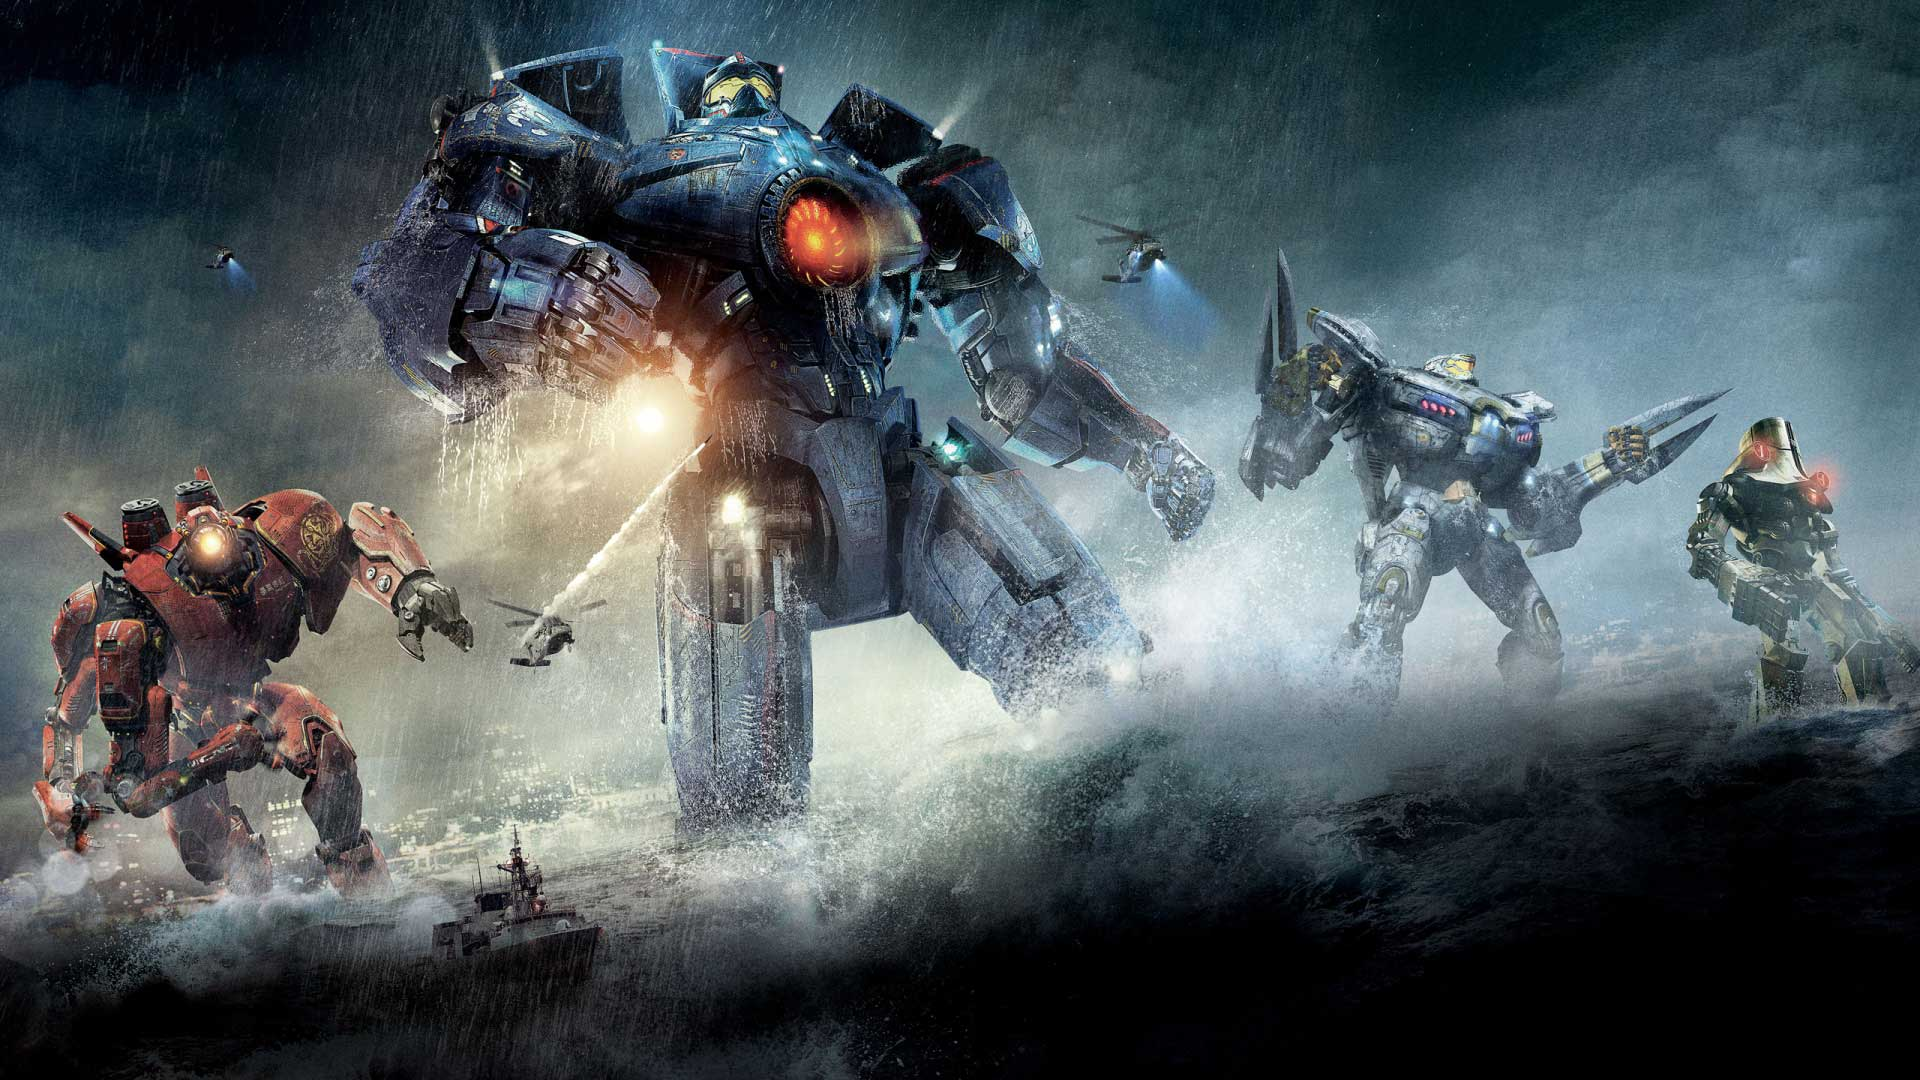 rim characters wallpapers pacific rim movie wallpapers hd backgrounds 1920x1080